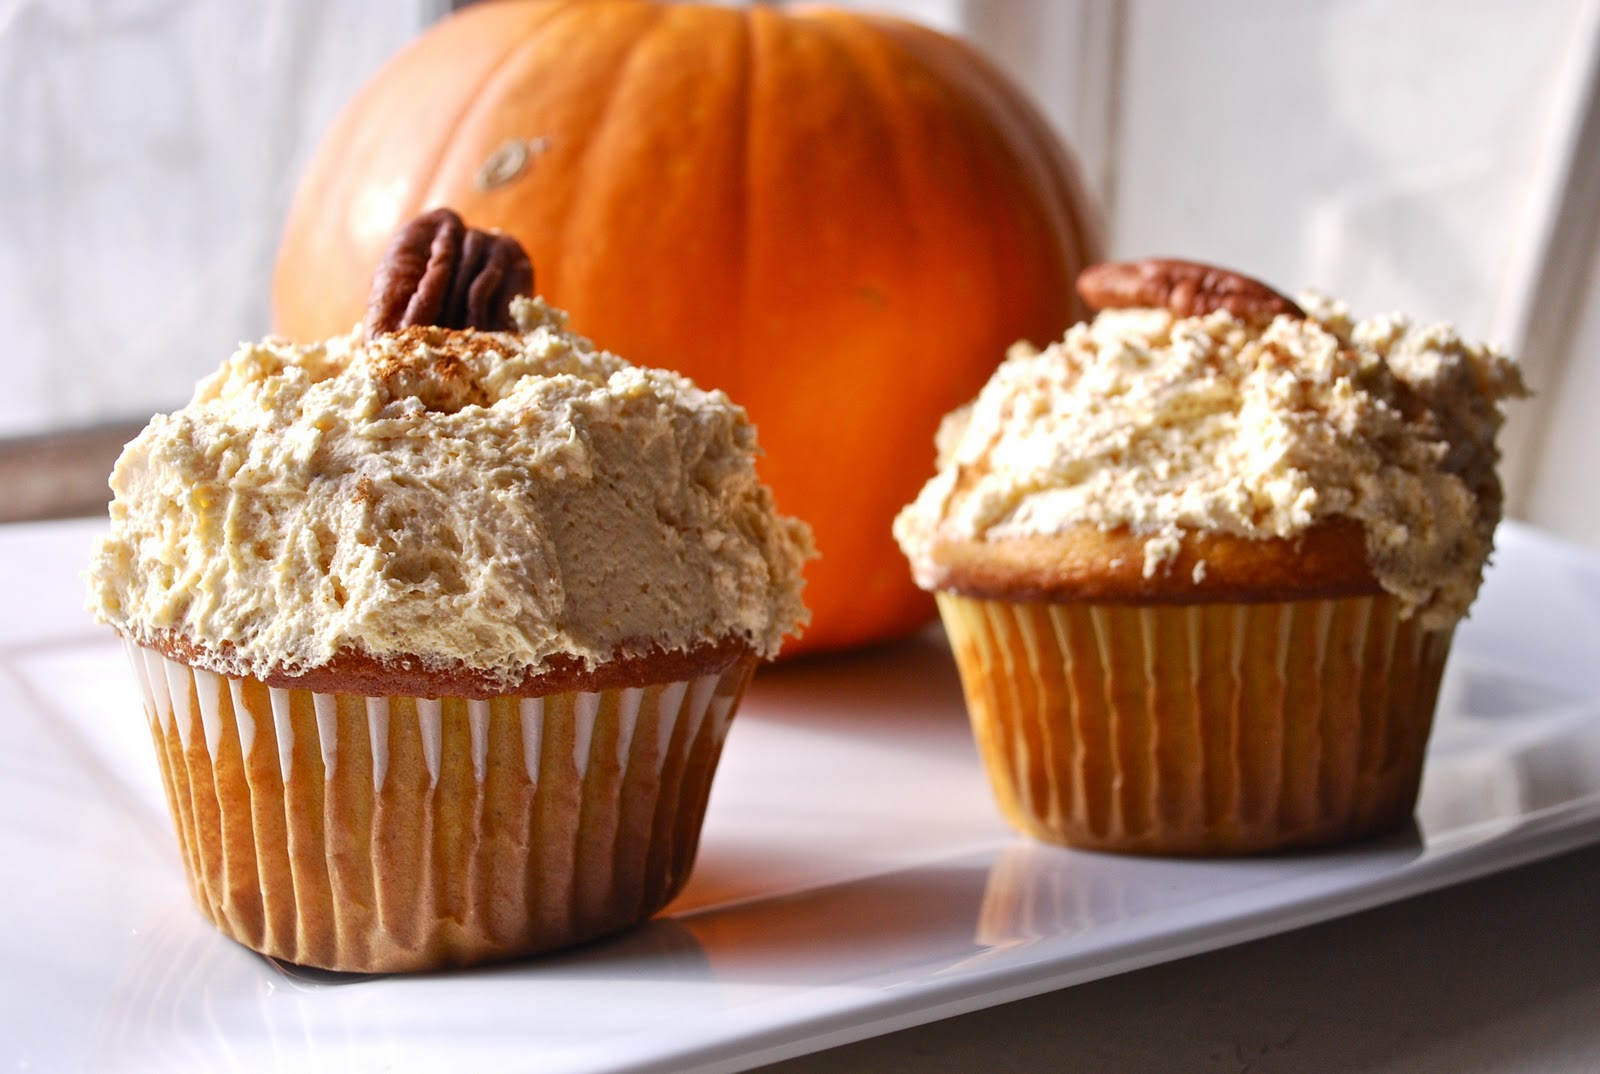 Pumpkin Cupcakes with Spiced Cream Cheese Frosting - The Fig Tree